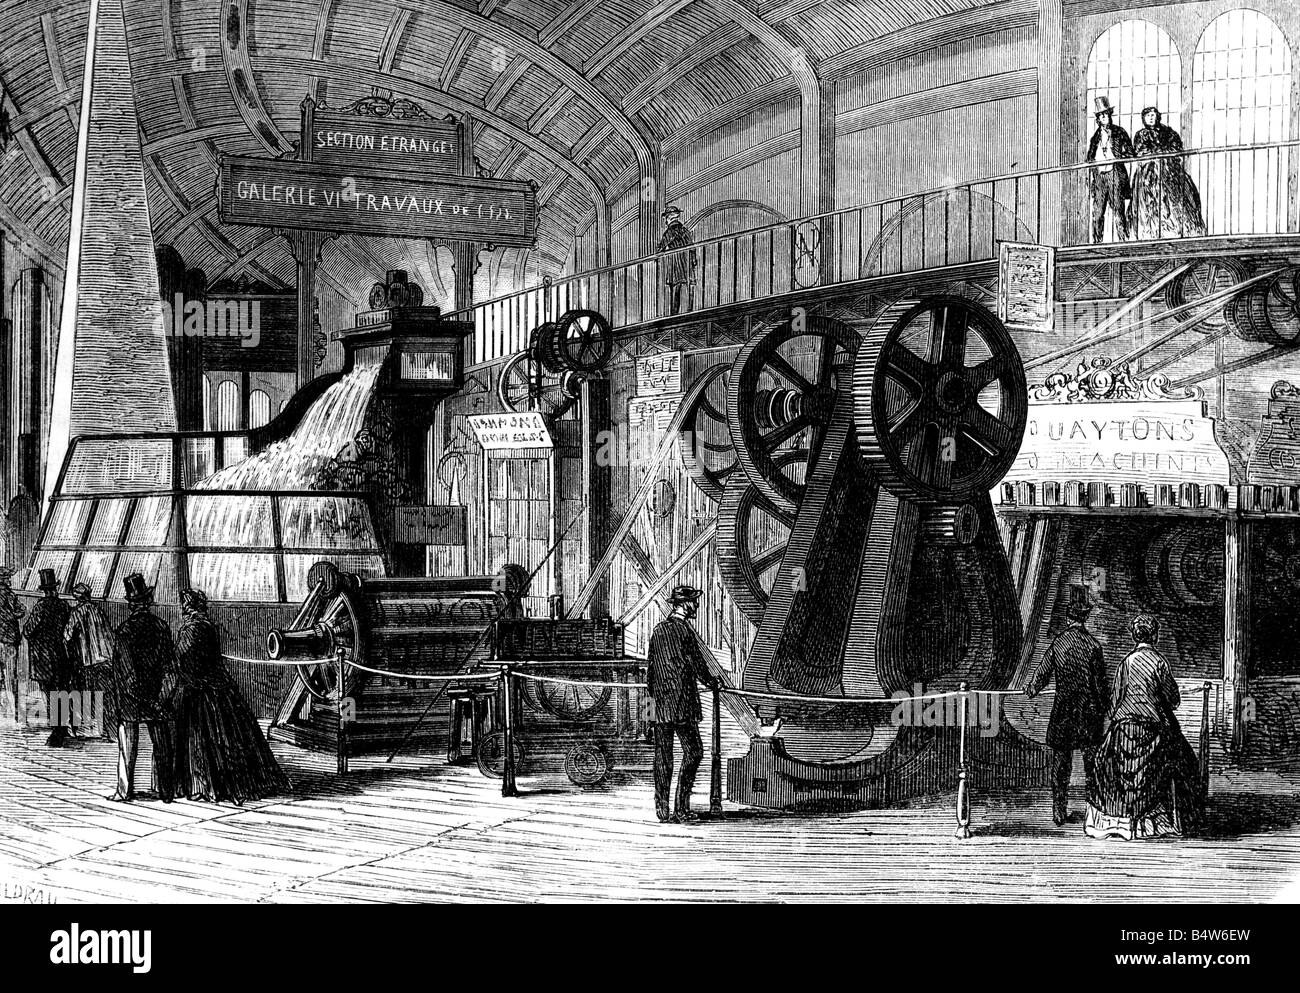 exhibitions, world exposition, Paris, 1.4.1867 - 31.12.1867, British machines, wood engraving after drawing by Gaildrau, - Stock Image